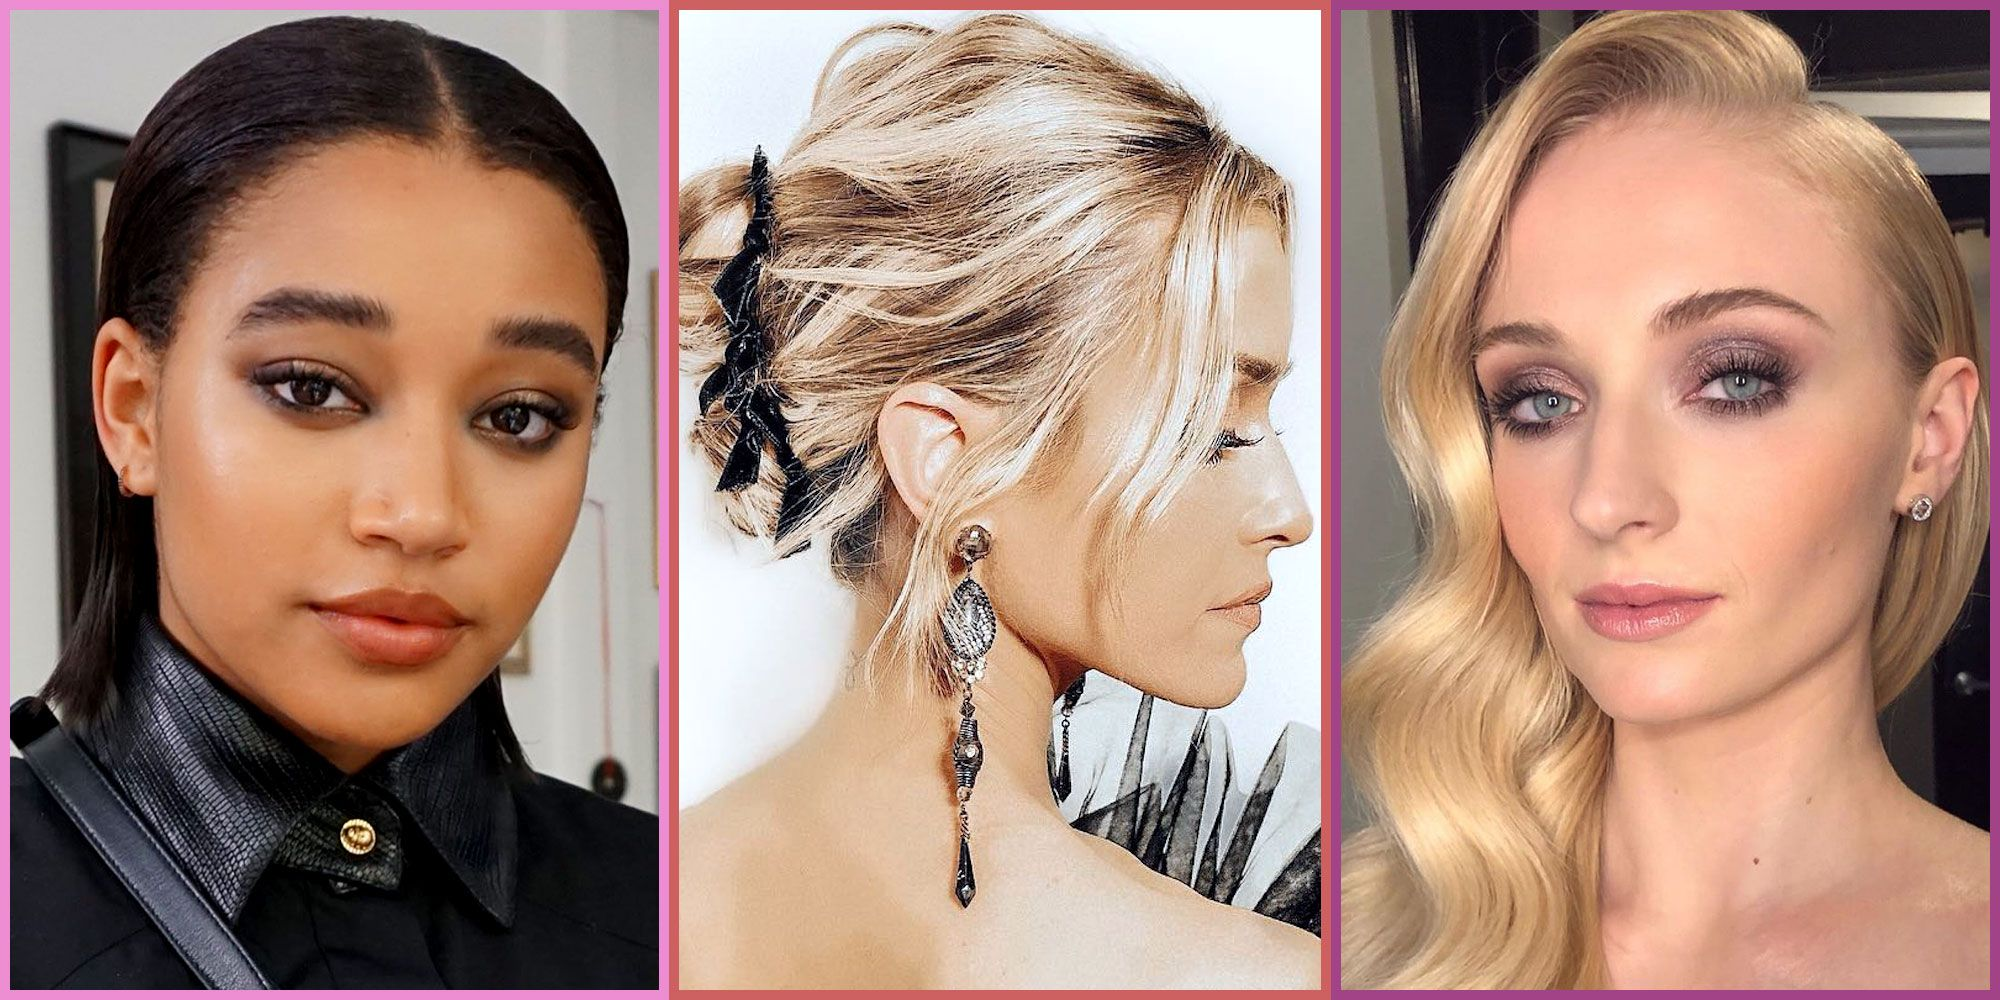 20 Best Winter Hair Trends and Hairstyles to Try for 2019